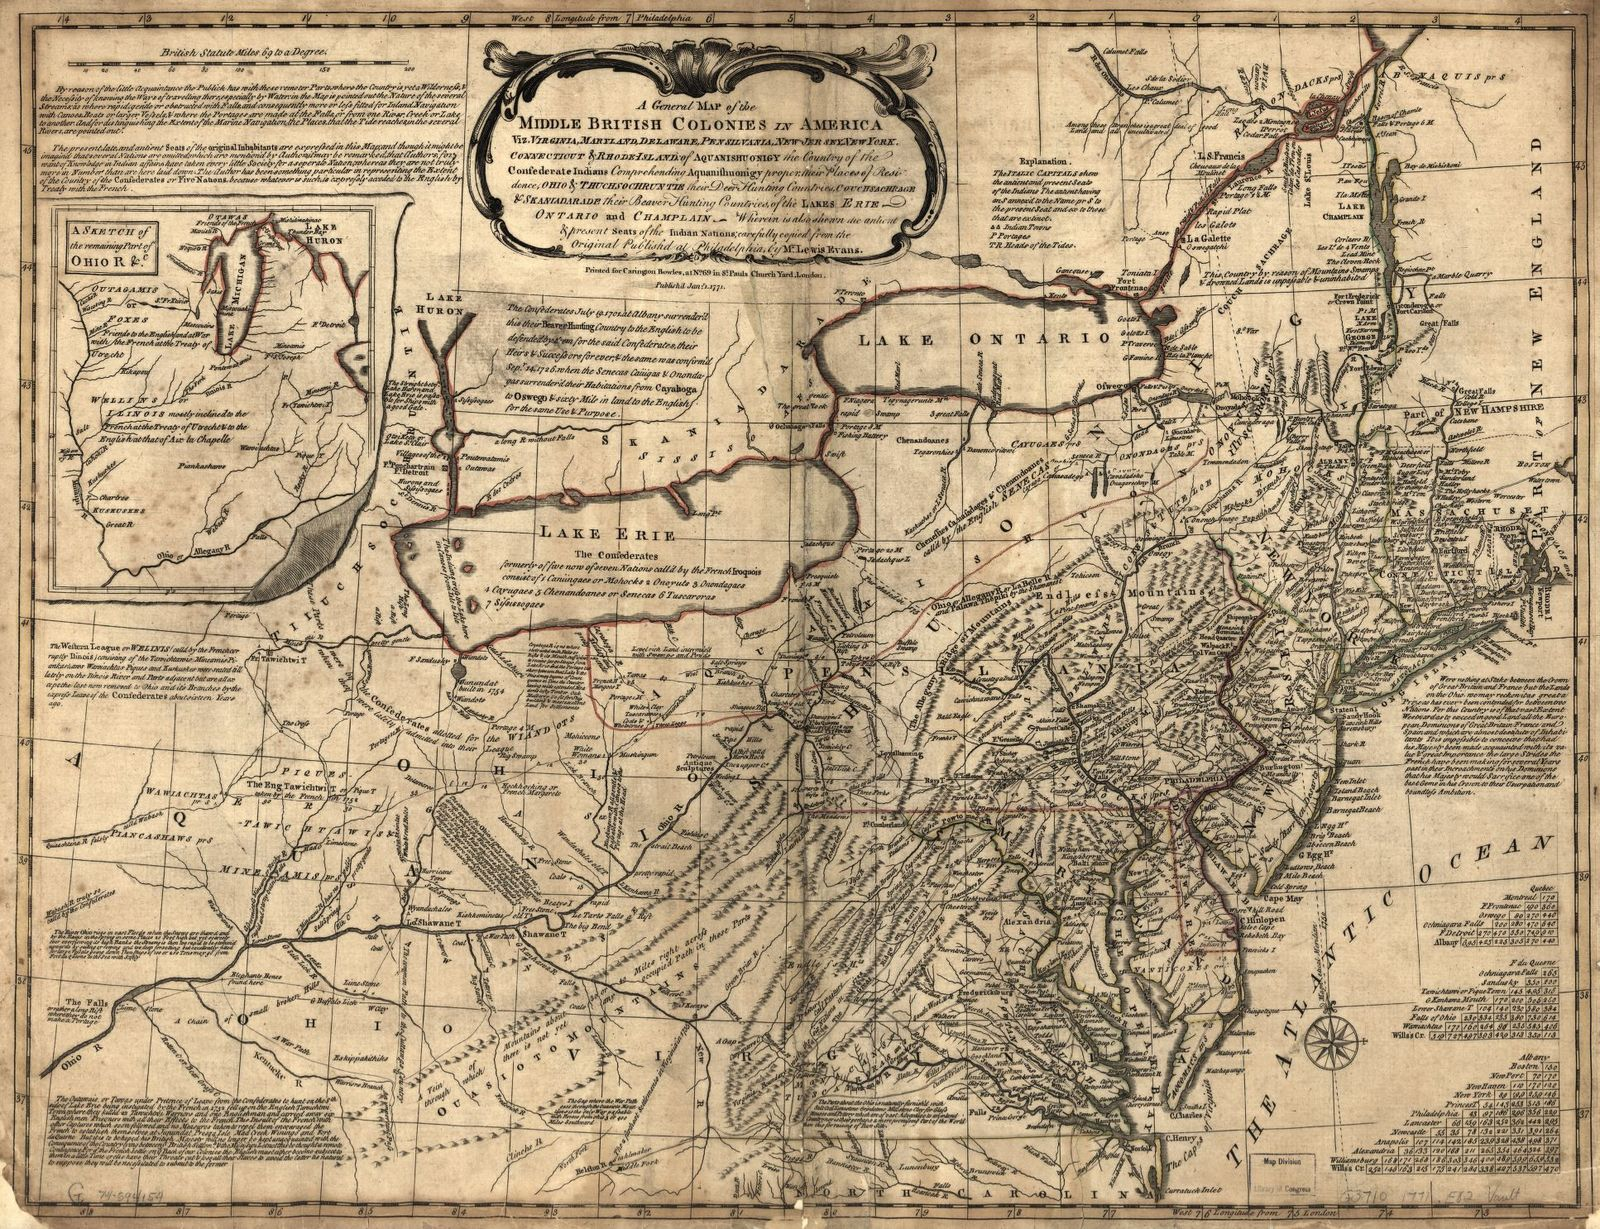 A general map of the middle British colonies in America, viz. Virginia, Maryland, Delaware, Pensilvania, New-Jersey, New York, Connecticut & Rhode Island: Of Aquanishuonigy the country of the confederate Indians comprehending Aquanishuonigy proper, their places of residence, Ohio & Thuchsochruntie their deer hunting countries, Couchsachrage & Skaniadarade their beaver hunting countries, of the Lakes Erie, Ontario and Champlain. Wherein is also shewn the antient & present seats of the Indian nations.